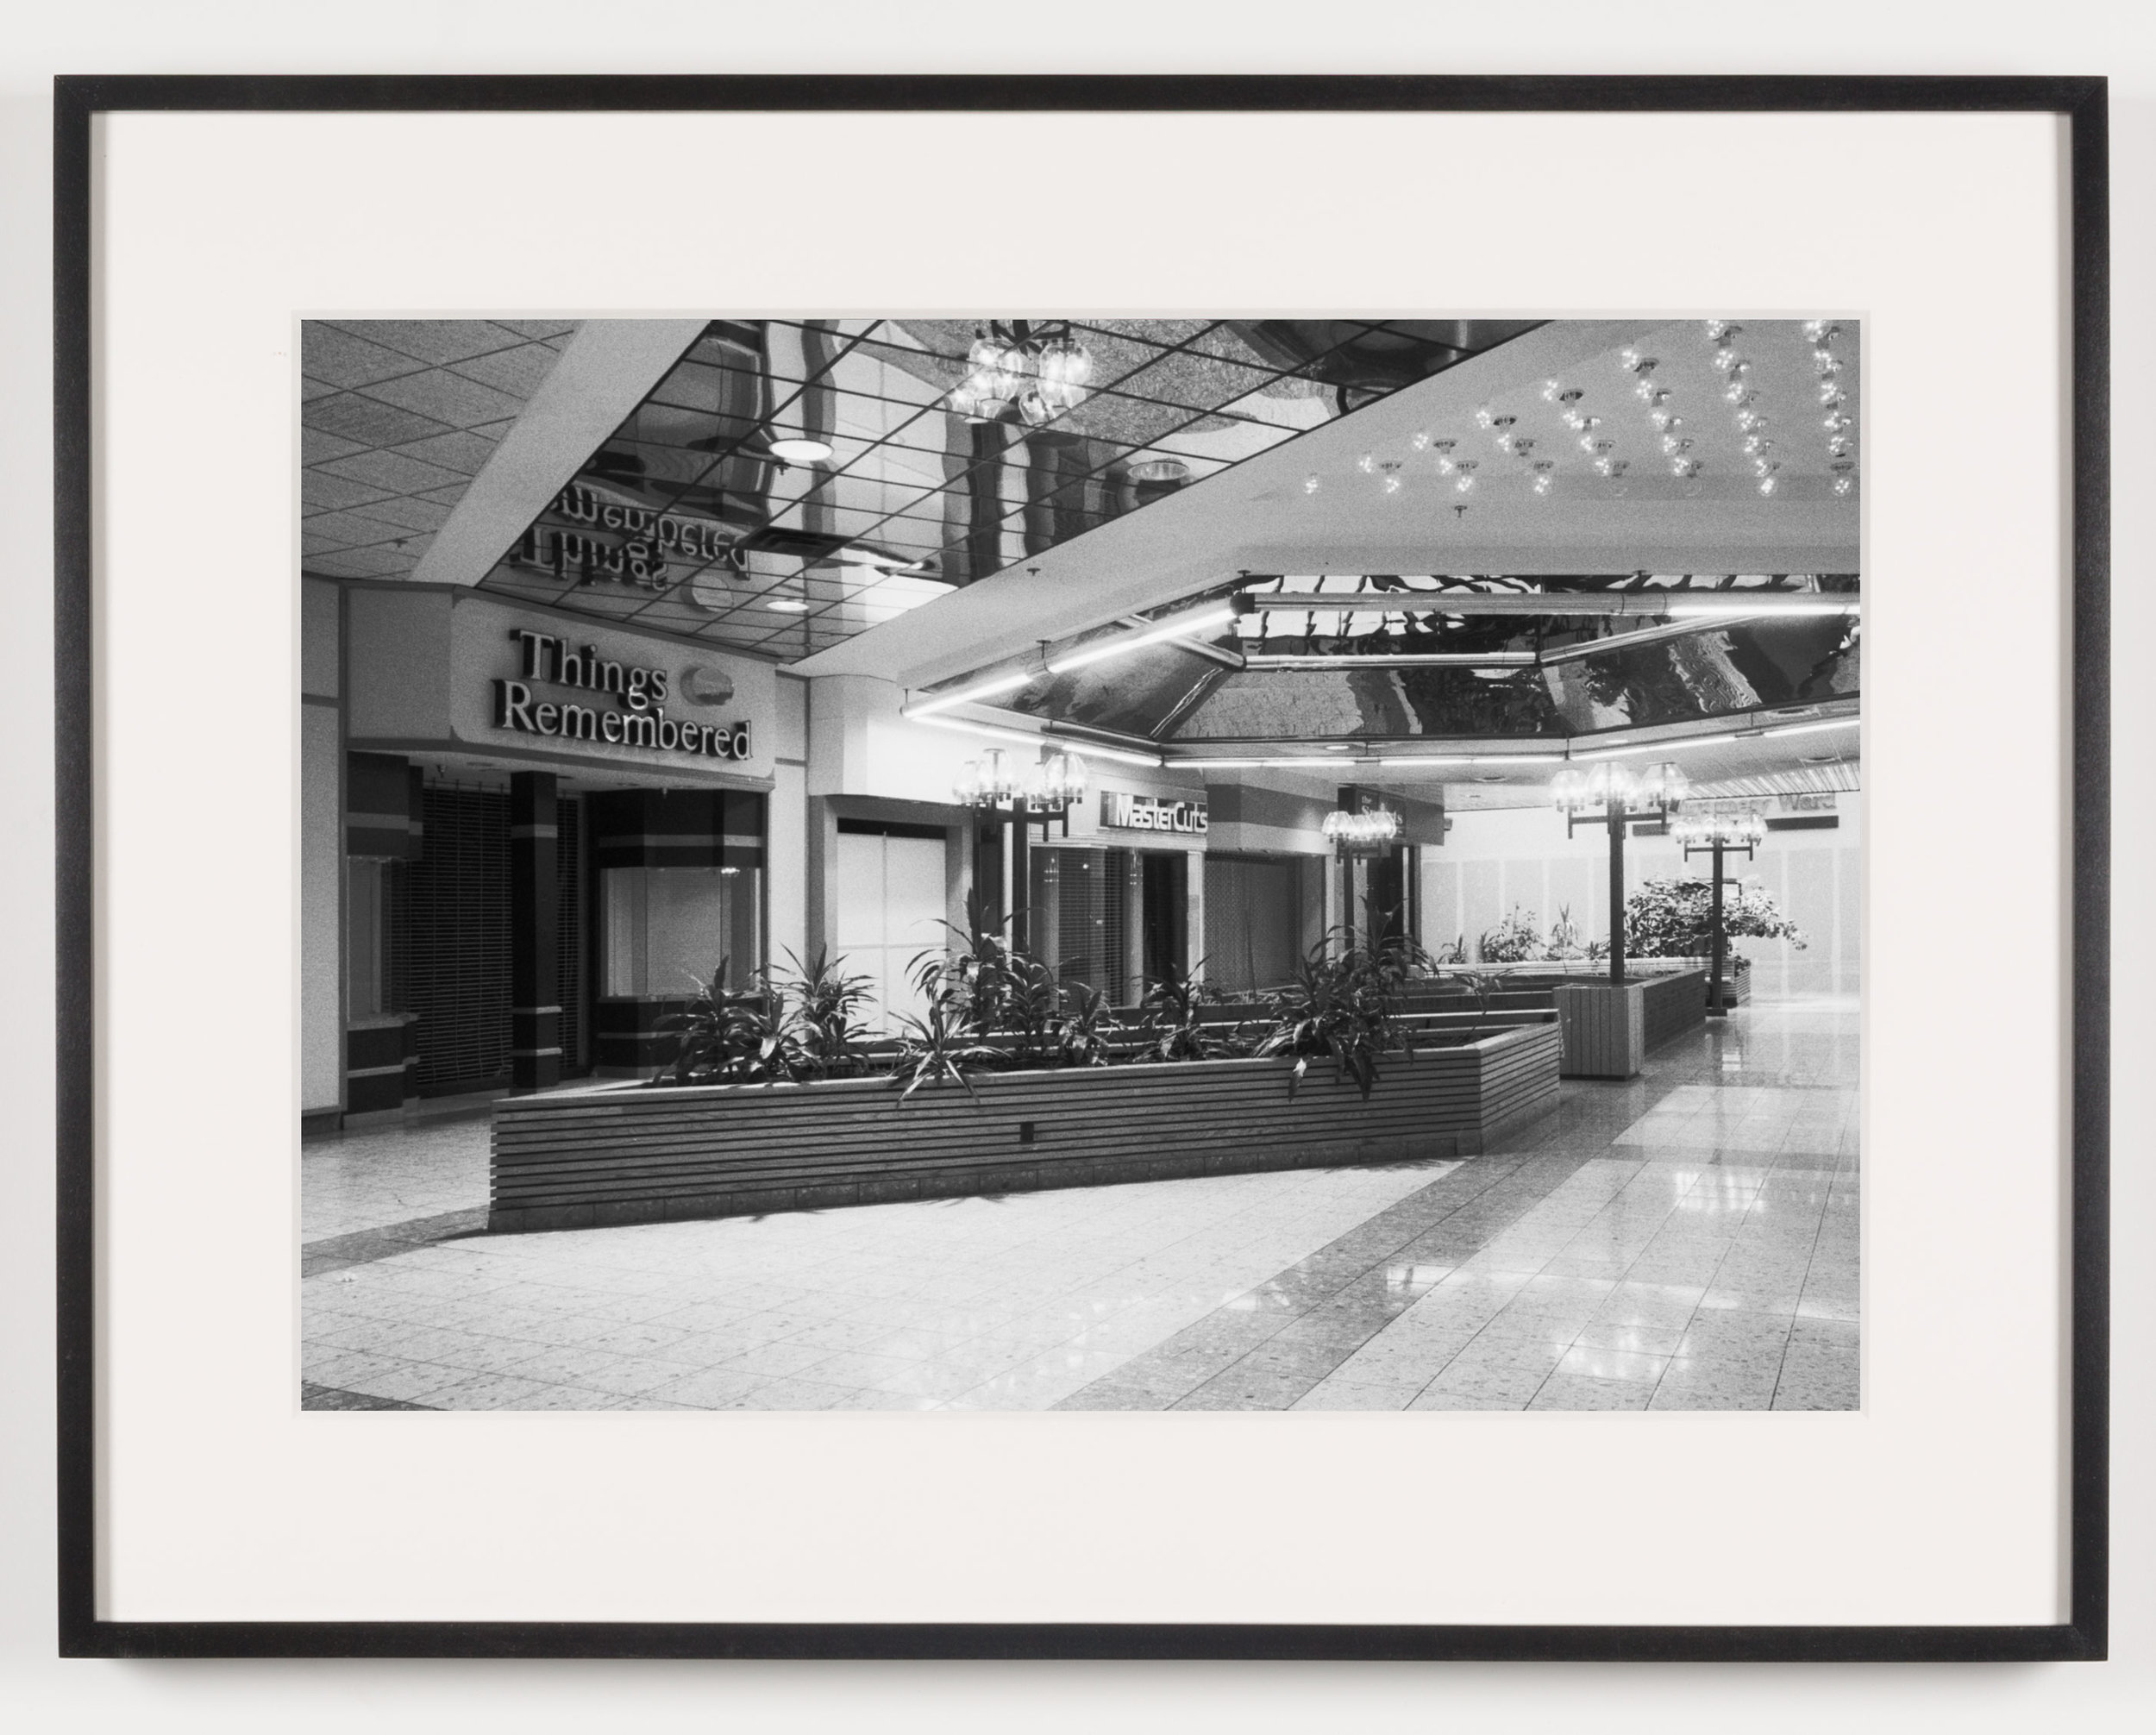 Southwyck Mall, Toledo, OH, Est 1972, Demo 2008   2011  Epson Ultrachrome K3 archival ink jet print on Hahnemühle Photo Rag paper  21 5/8 x 28 1/8 inches   American Passages, 2001–2011    A Diagram of Forces, 2011